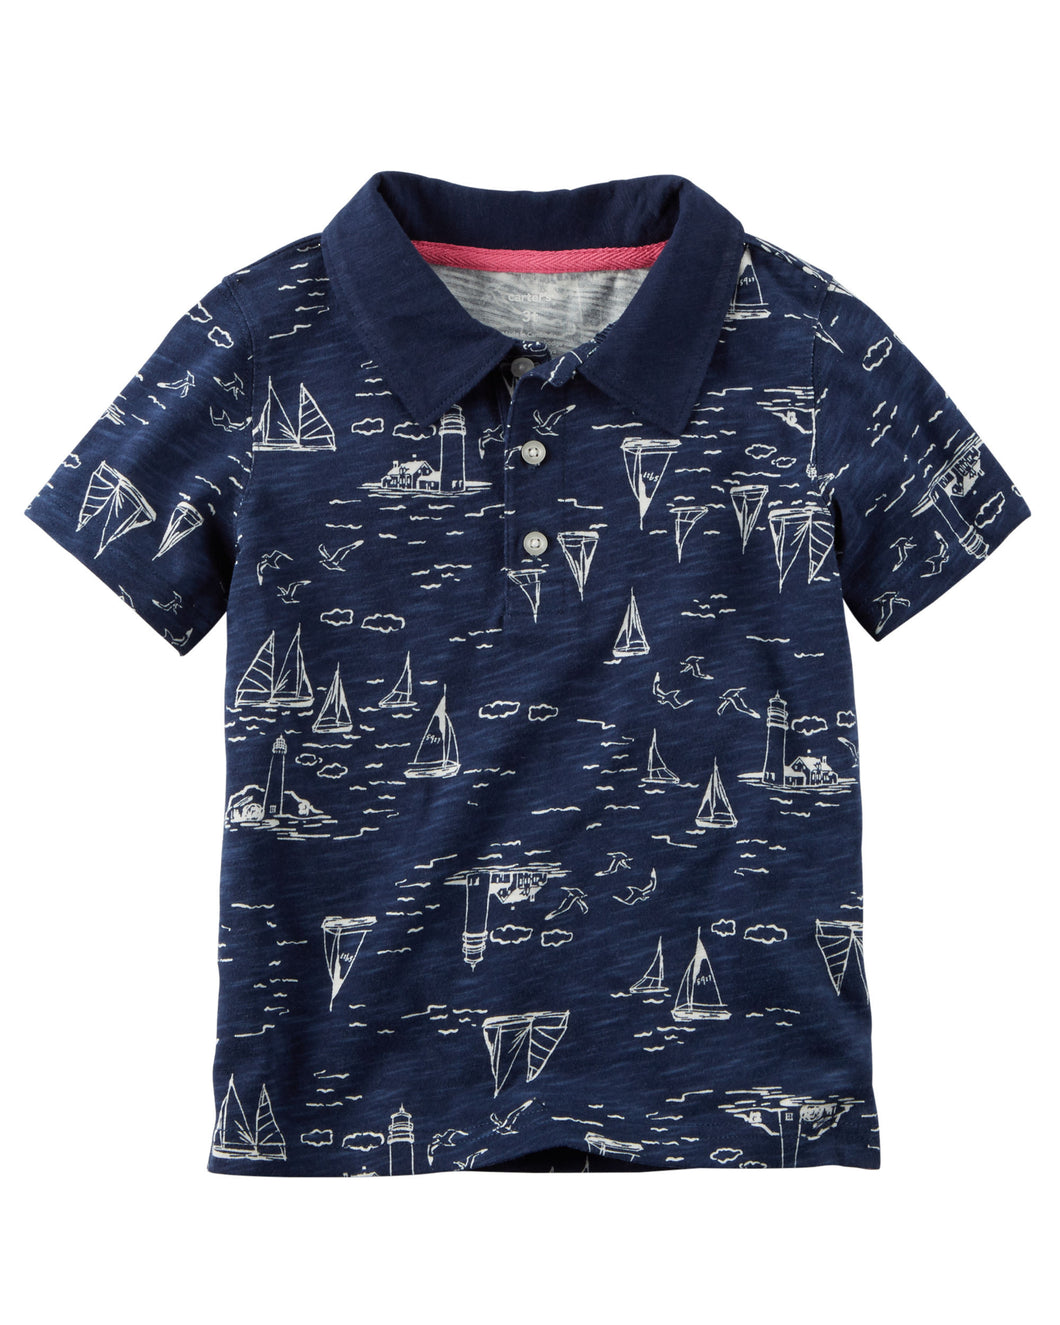 CABY086 New Baby Boys Carter's Sailboat Slub Jersey Polo